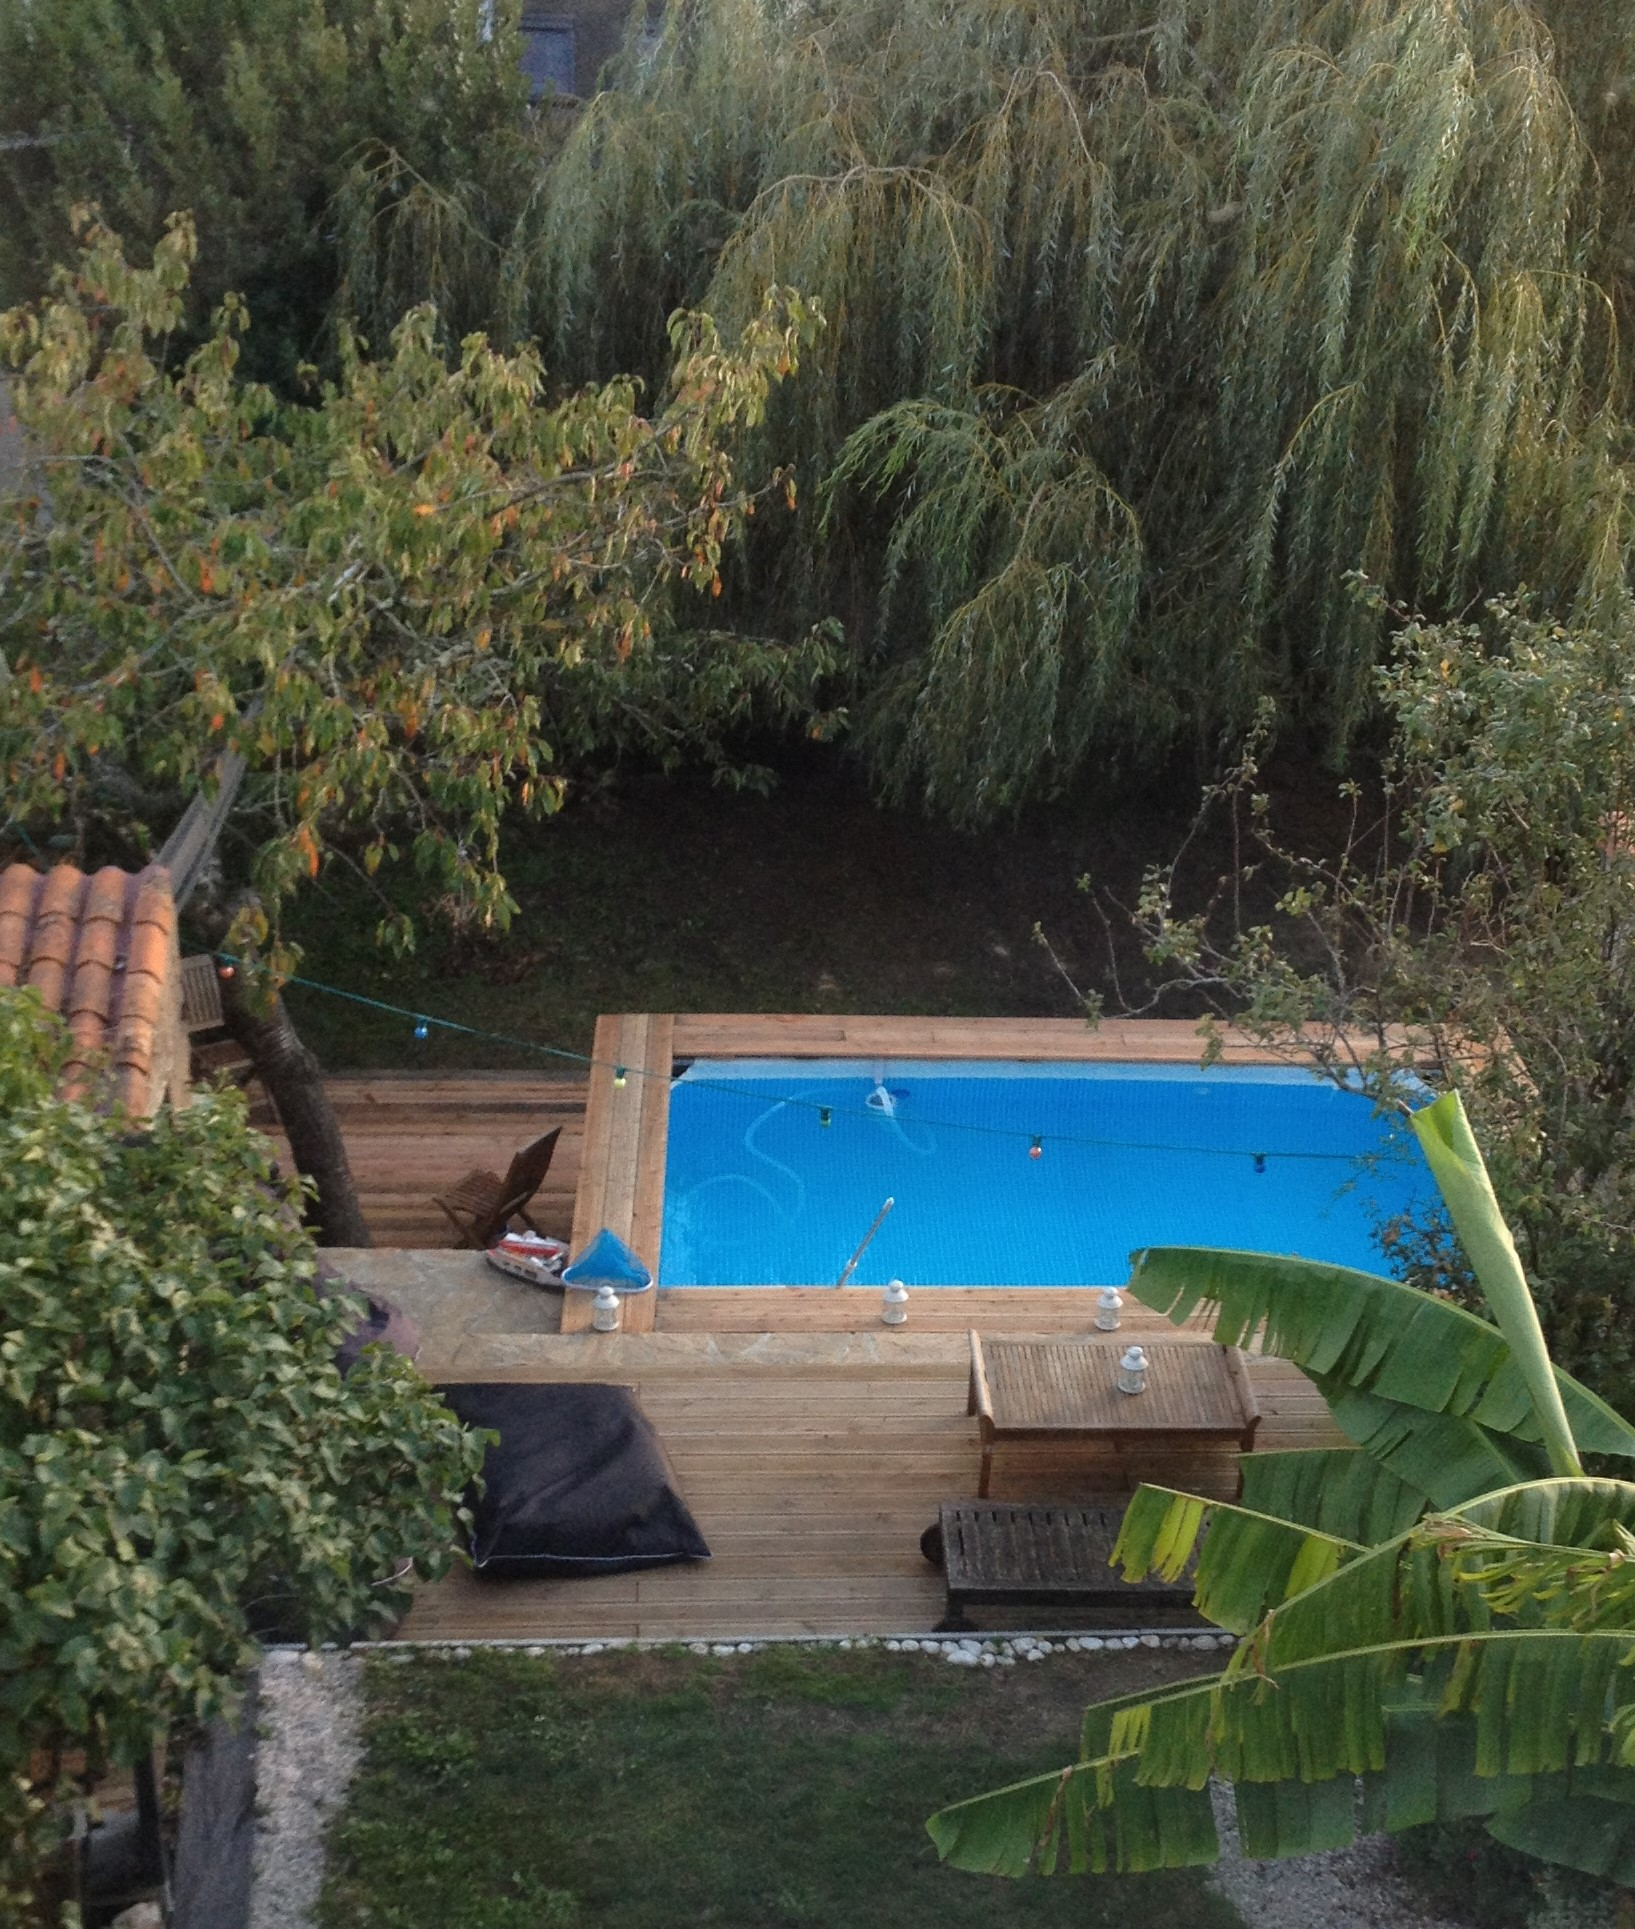 Peut on enterrer une piscine hors sol stunning piscine for Piscine a enterrer